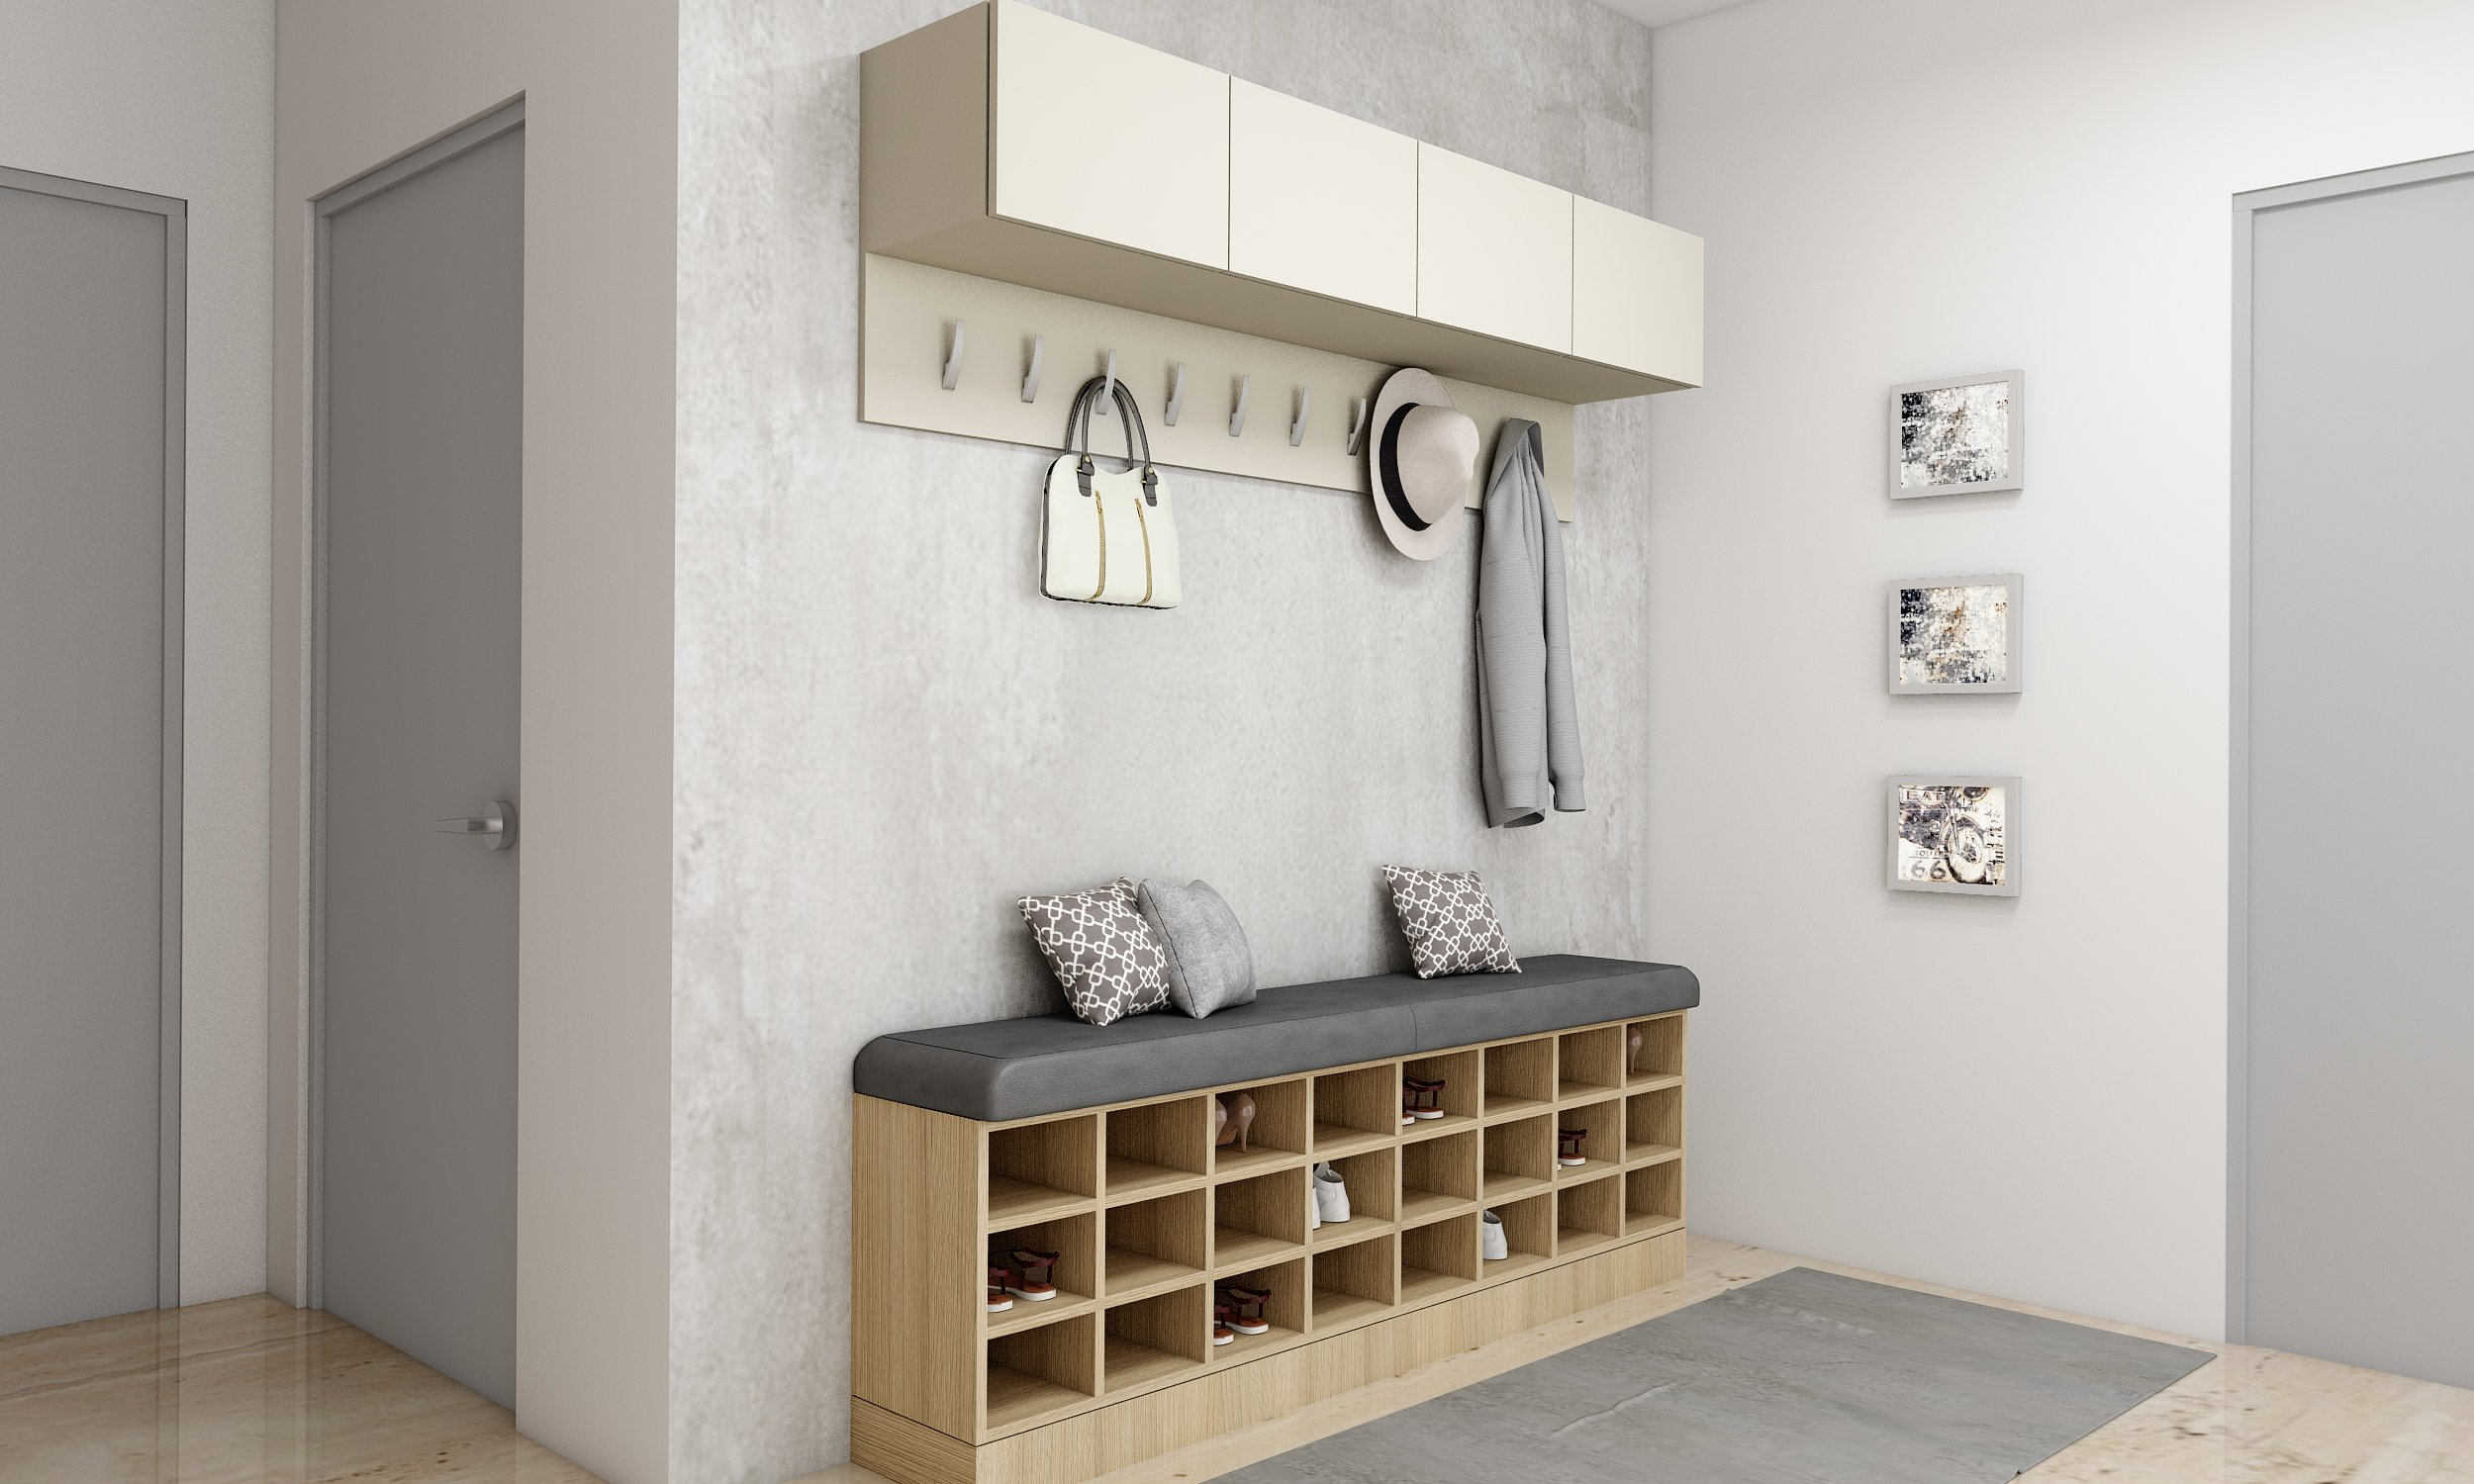 Hallway Cabinets in Light Grey and Wooden With Sitting Cushion Area and Coat Hanger